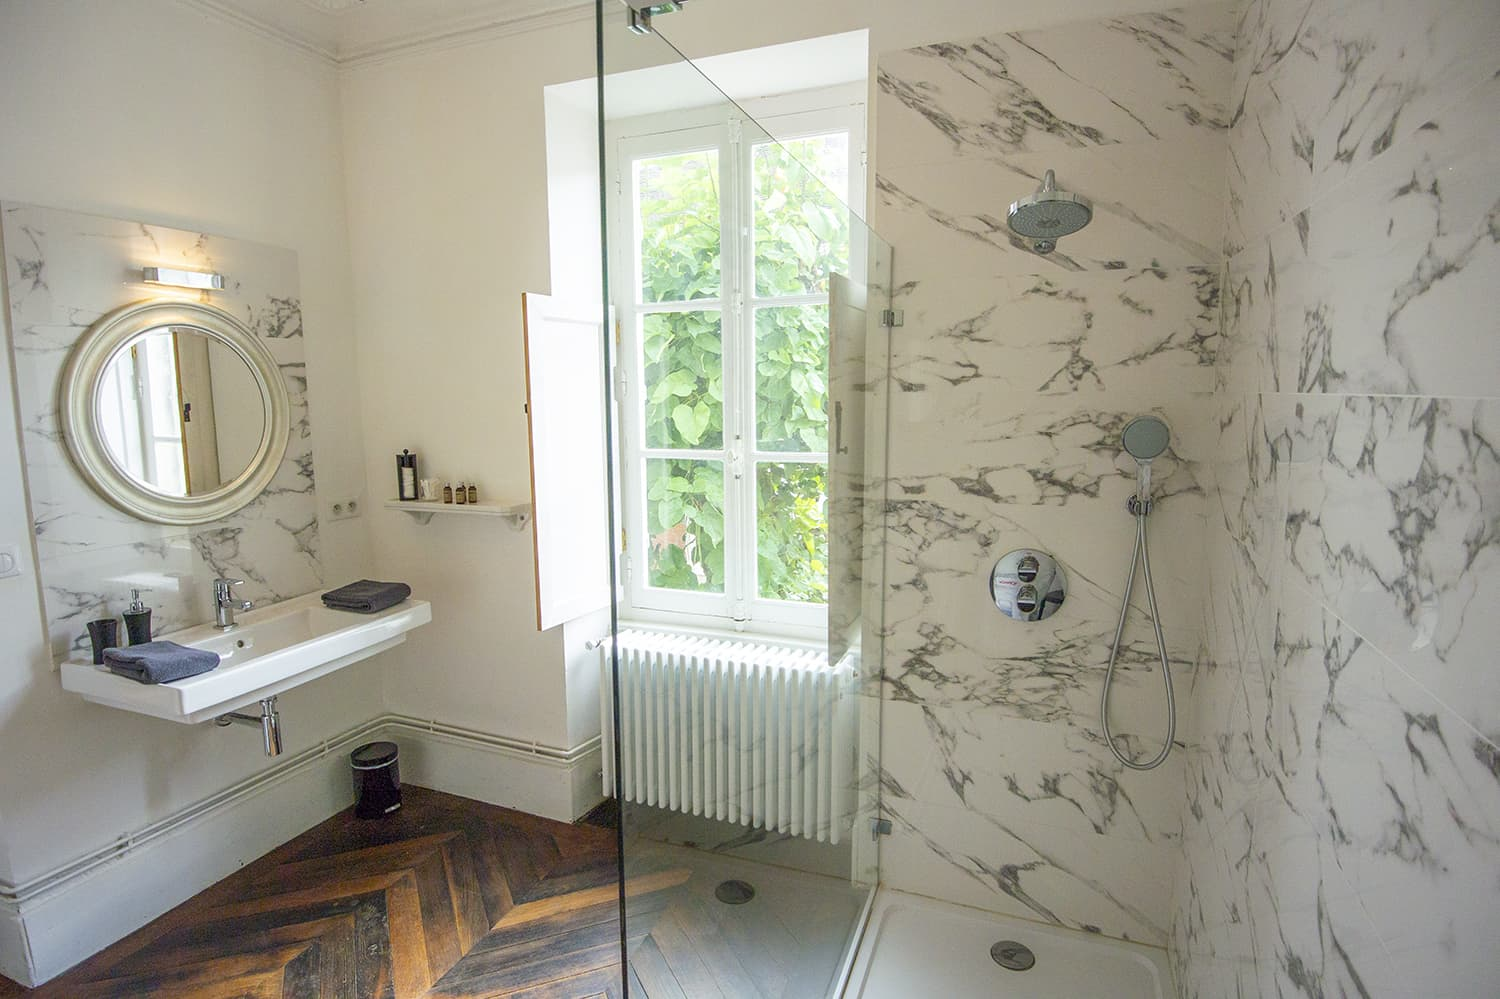 Bathroom in Bourgogne-Franche-Comté self-catering accommodation